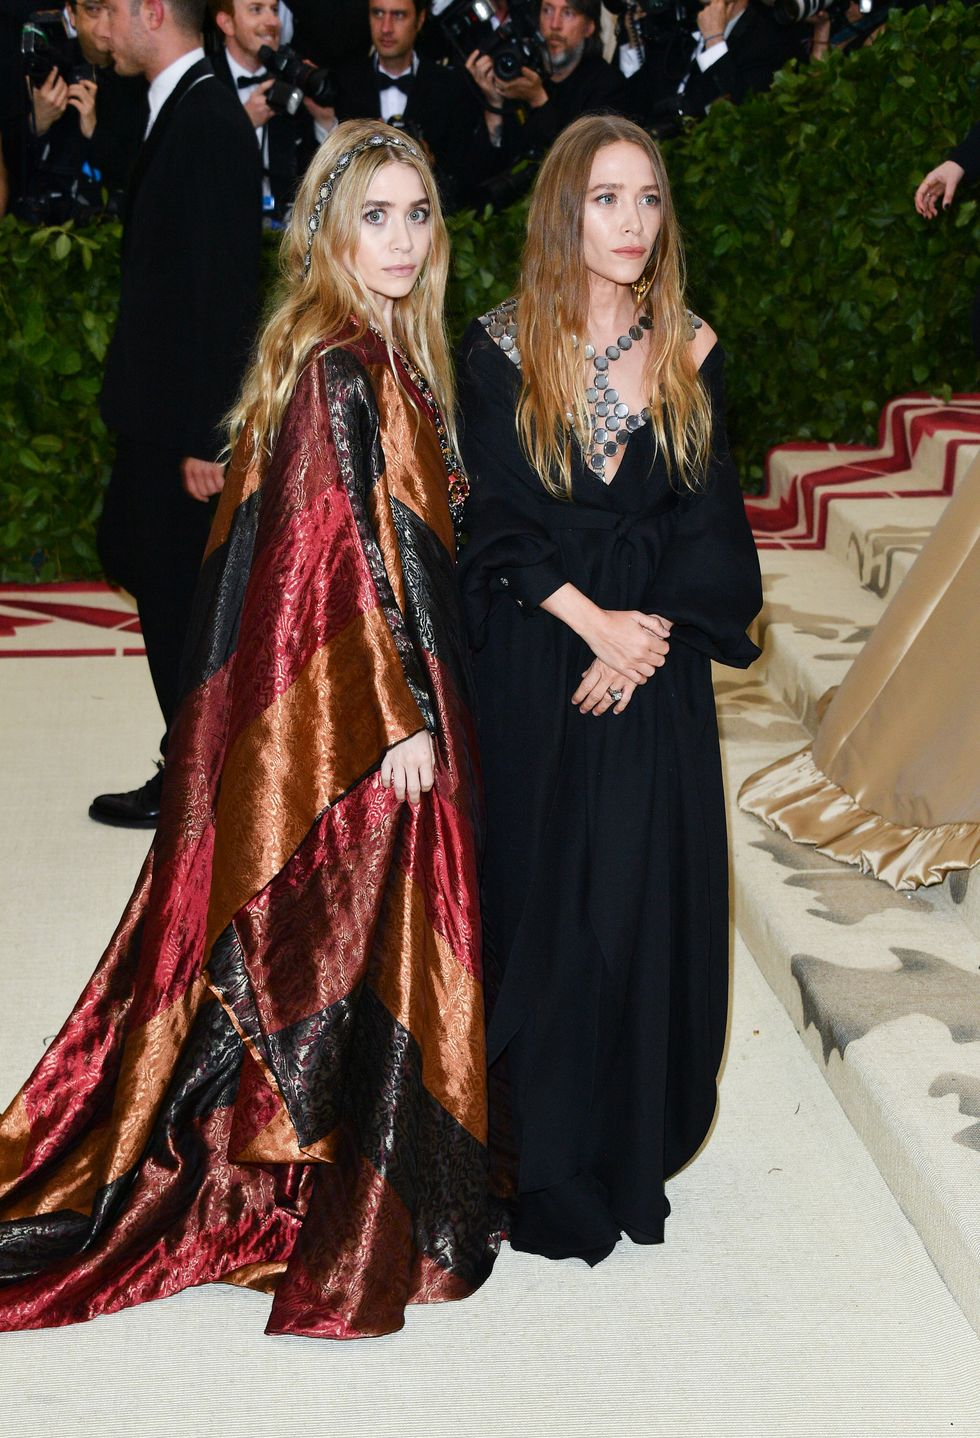 Gaya Effortless Mary-Kate dan Ashley Olsen yang Tetap Stunning!